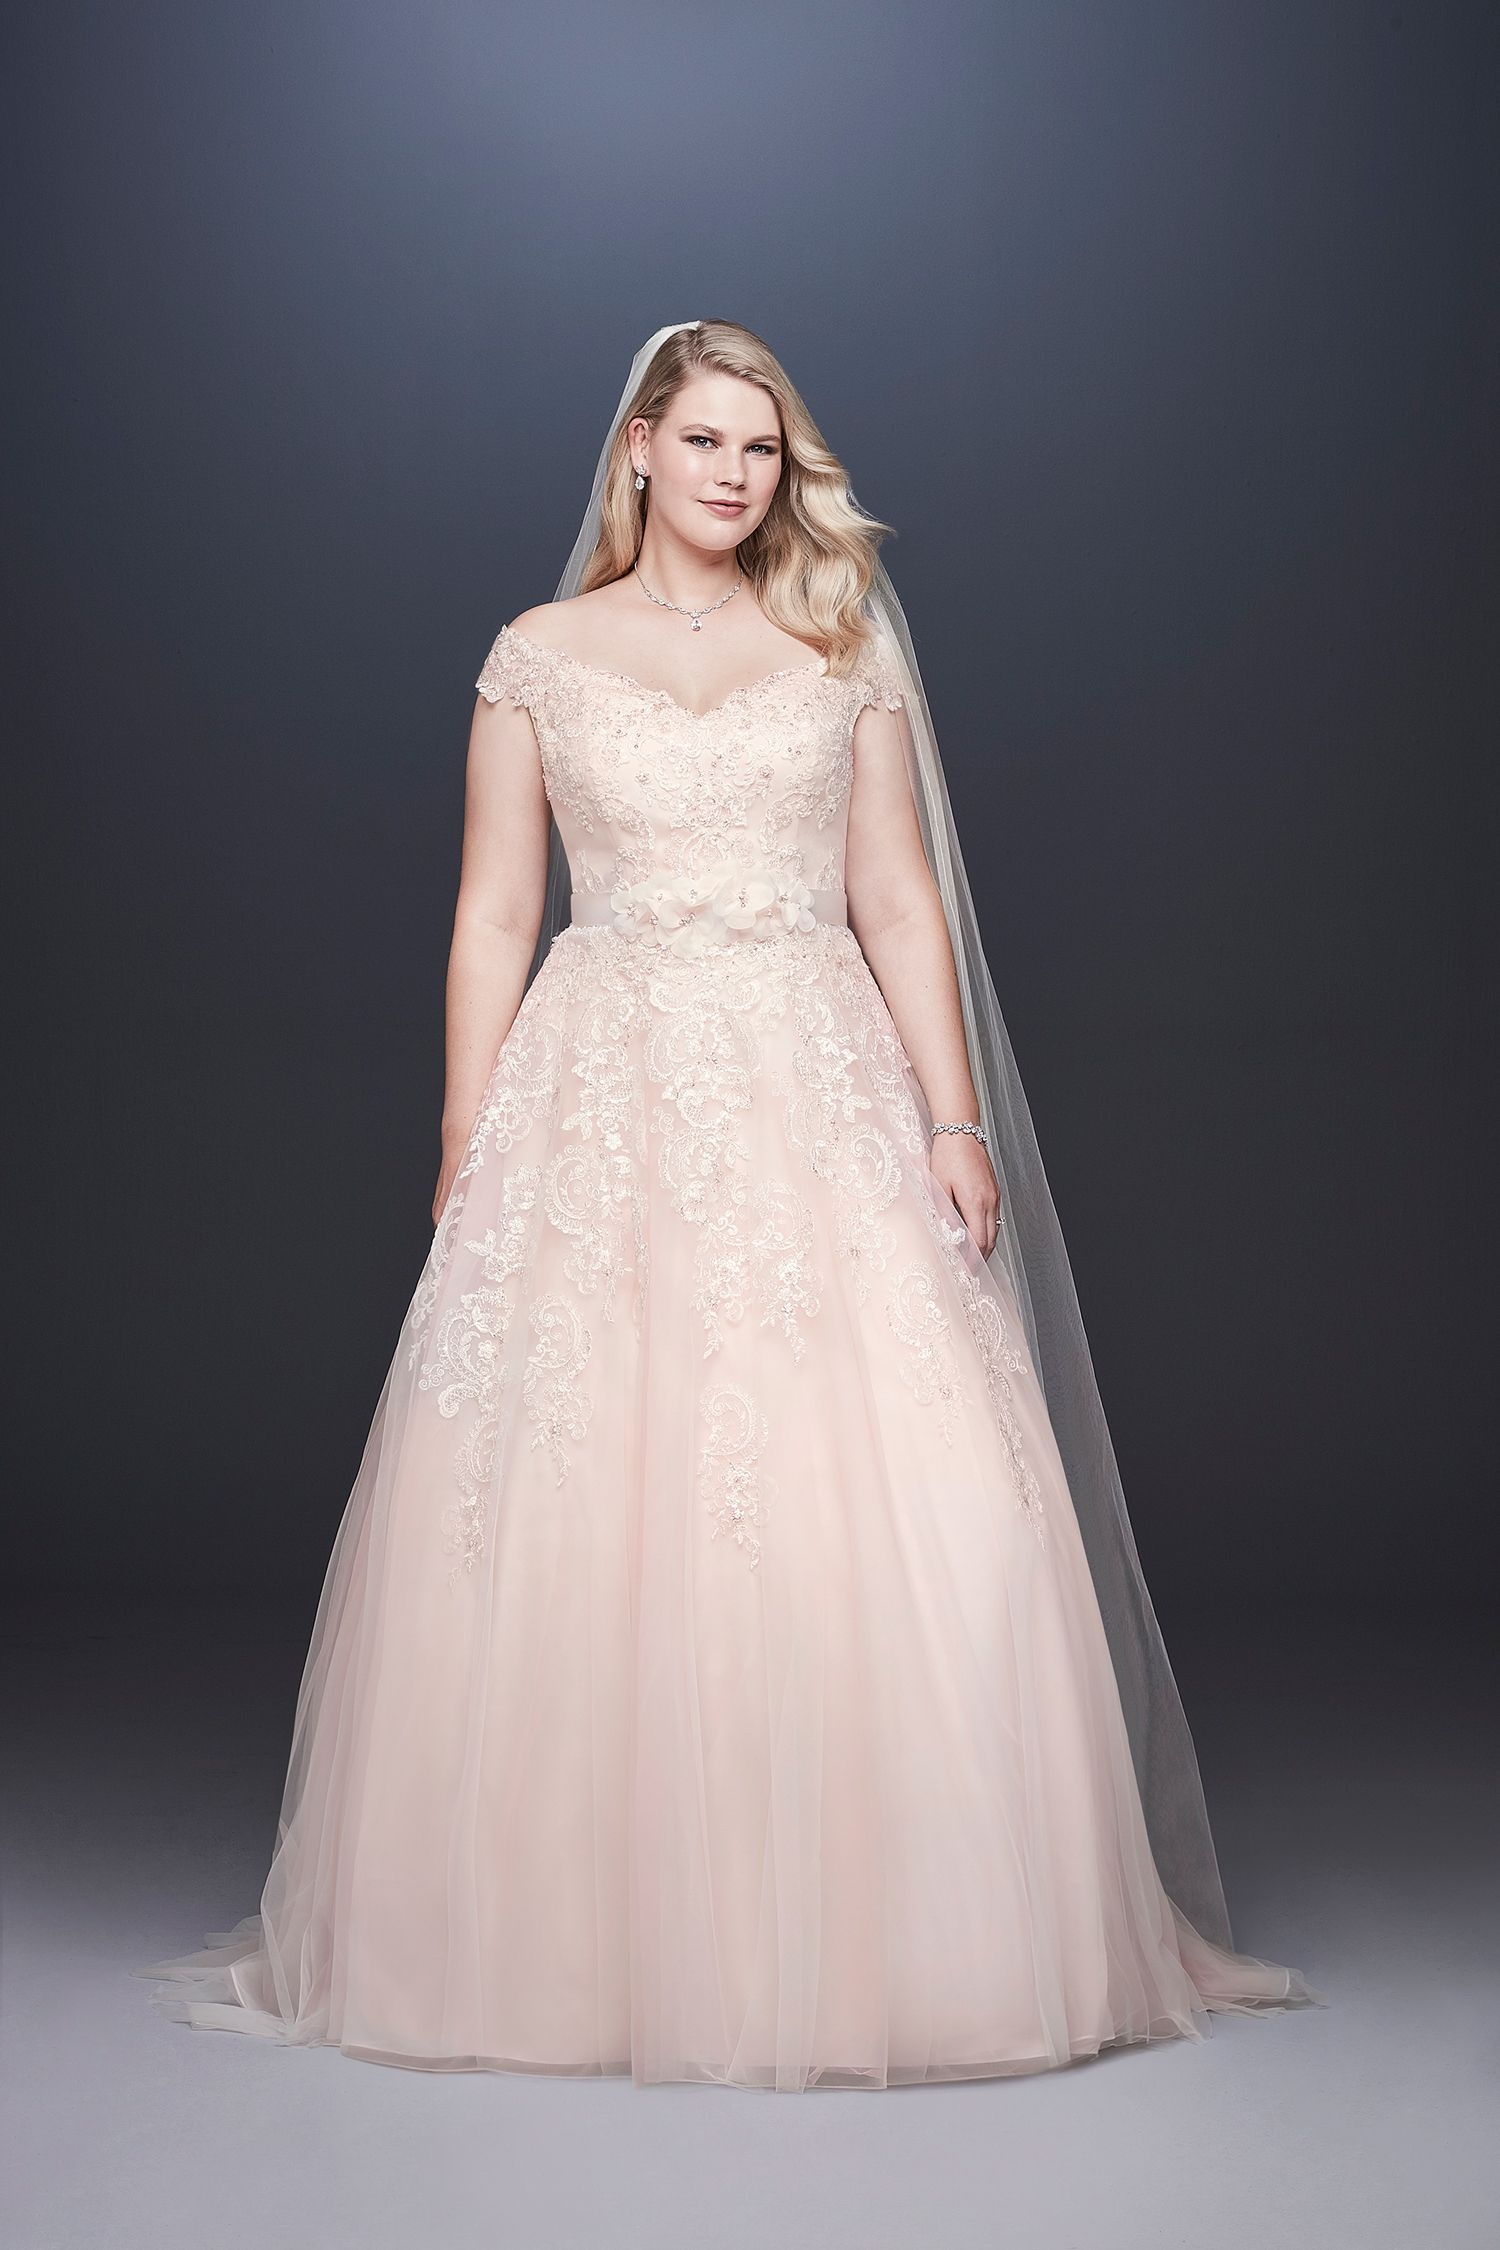 Your Wedding Planned To Perfection Curvy Bride Curvy Wedding Dress Disney Inspired Wedding Dresses [ 2250 x 1500 Pixel ]